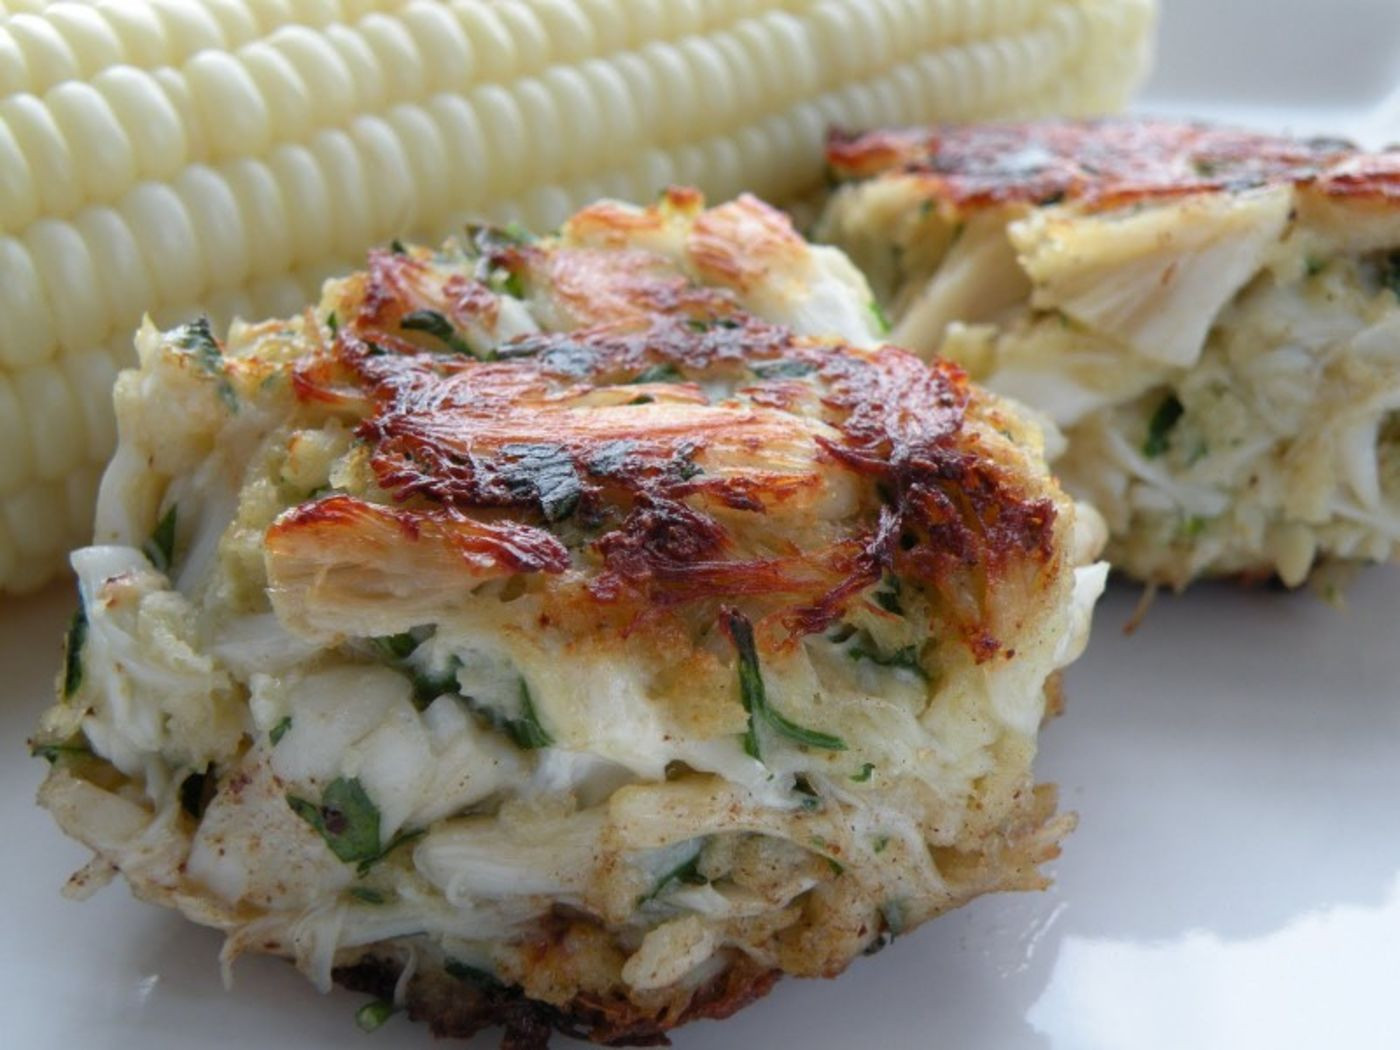 Healthy Crab Cake Recipe  15 Delicious Super Bowl Appetizers and Dips The Girl